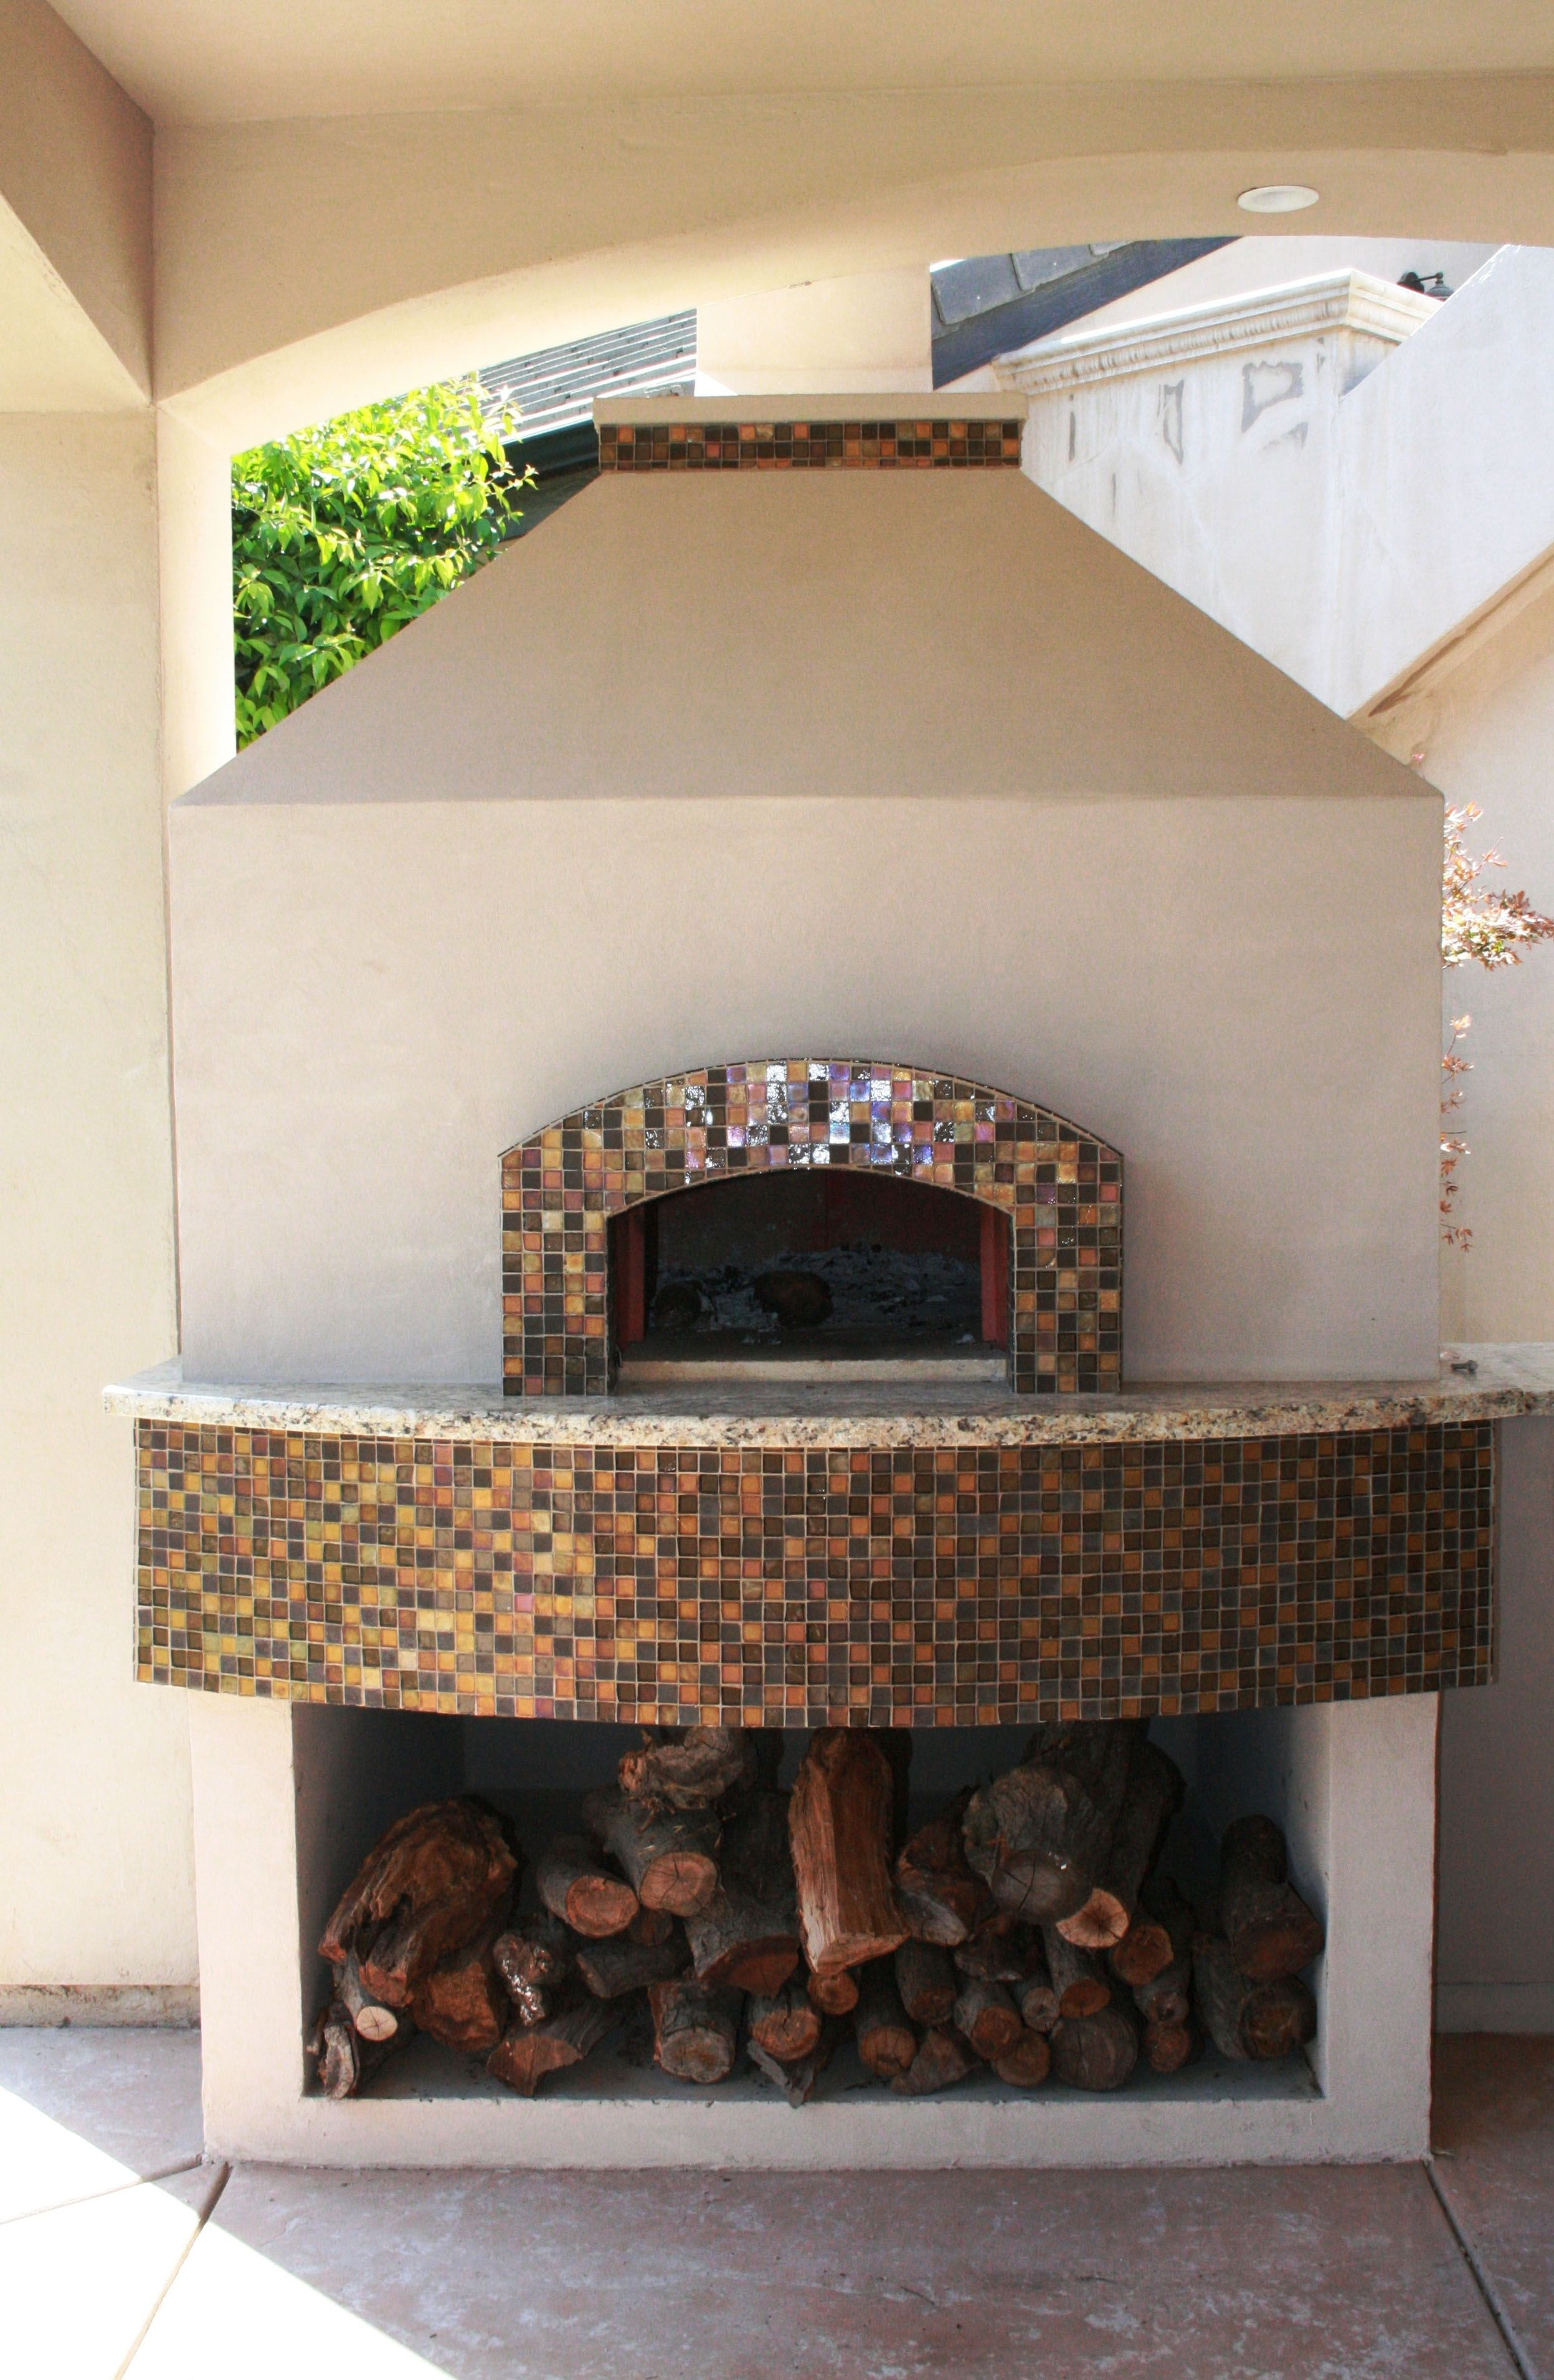 associates oven brick firepit fireplace outdoor pits pizza chance pit lovely and fire fireplaces